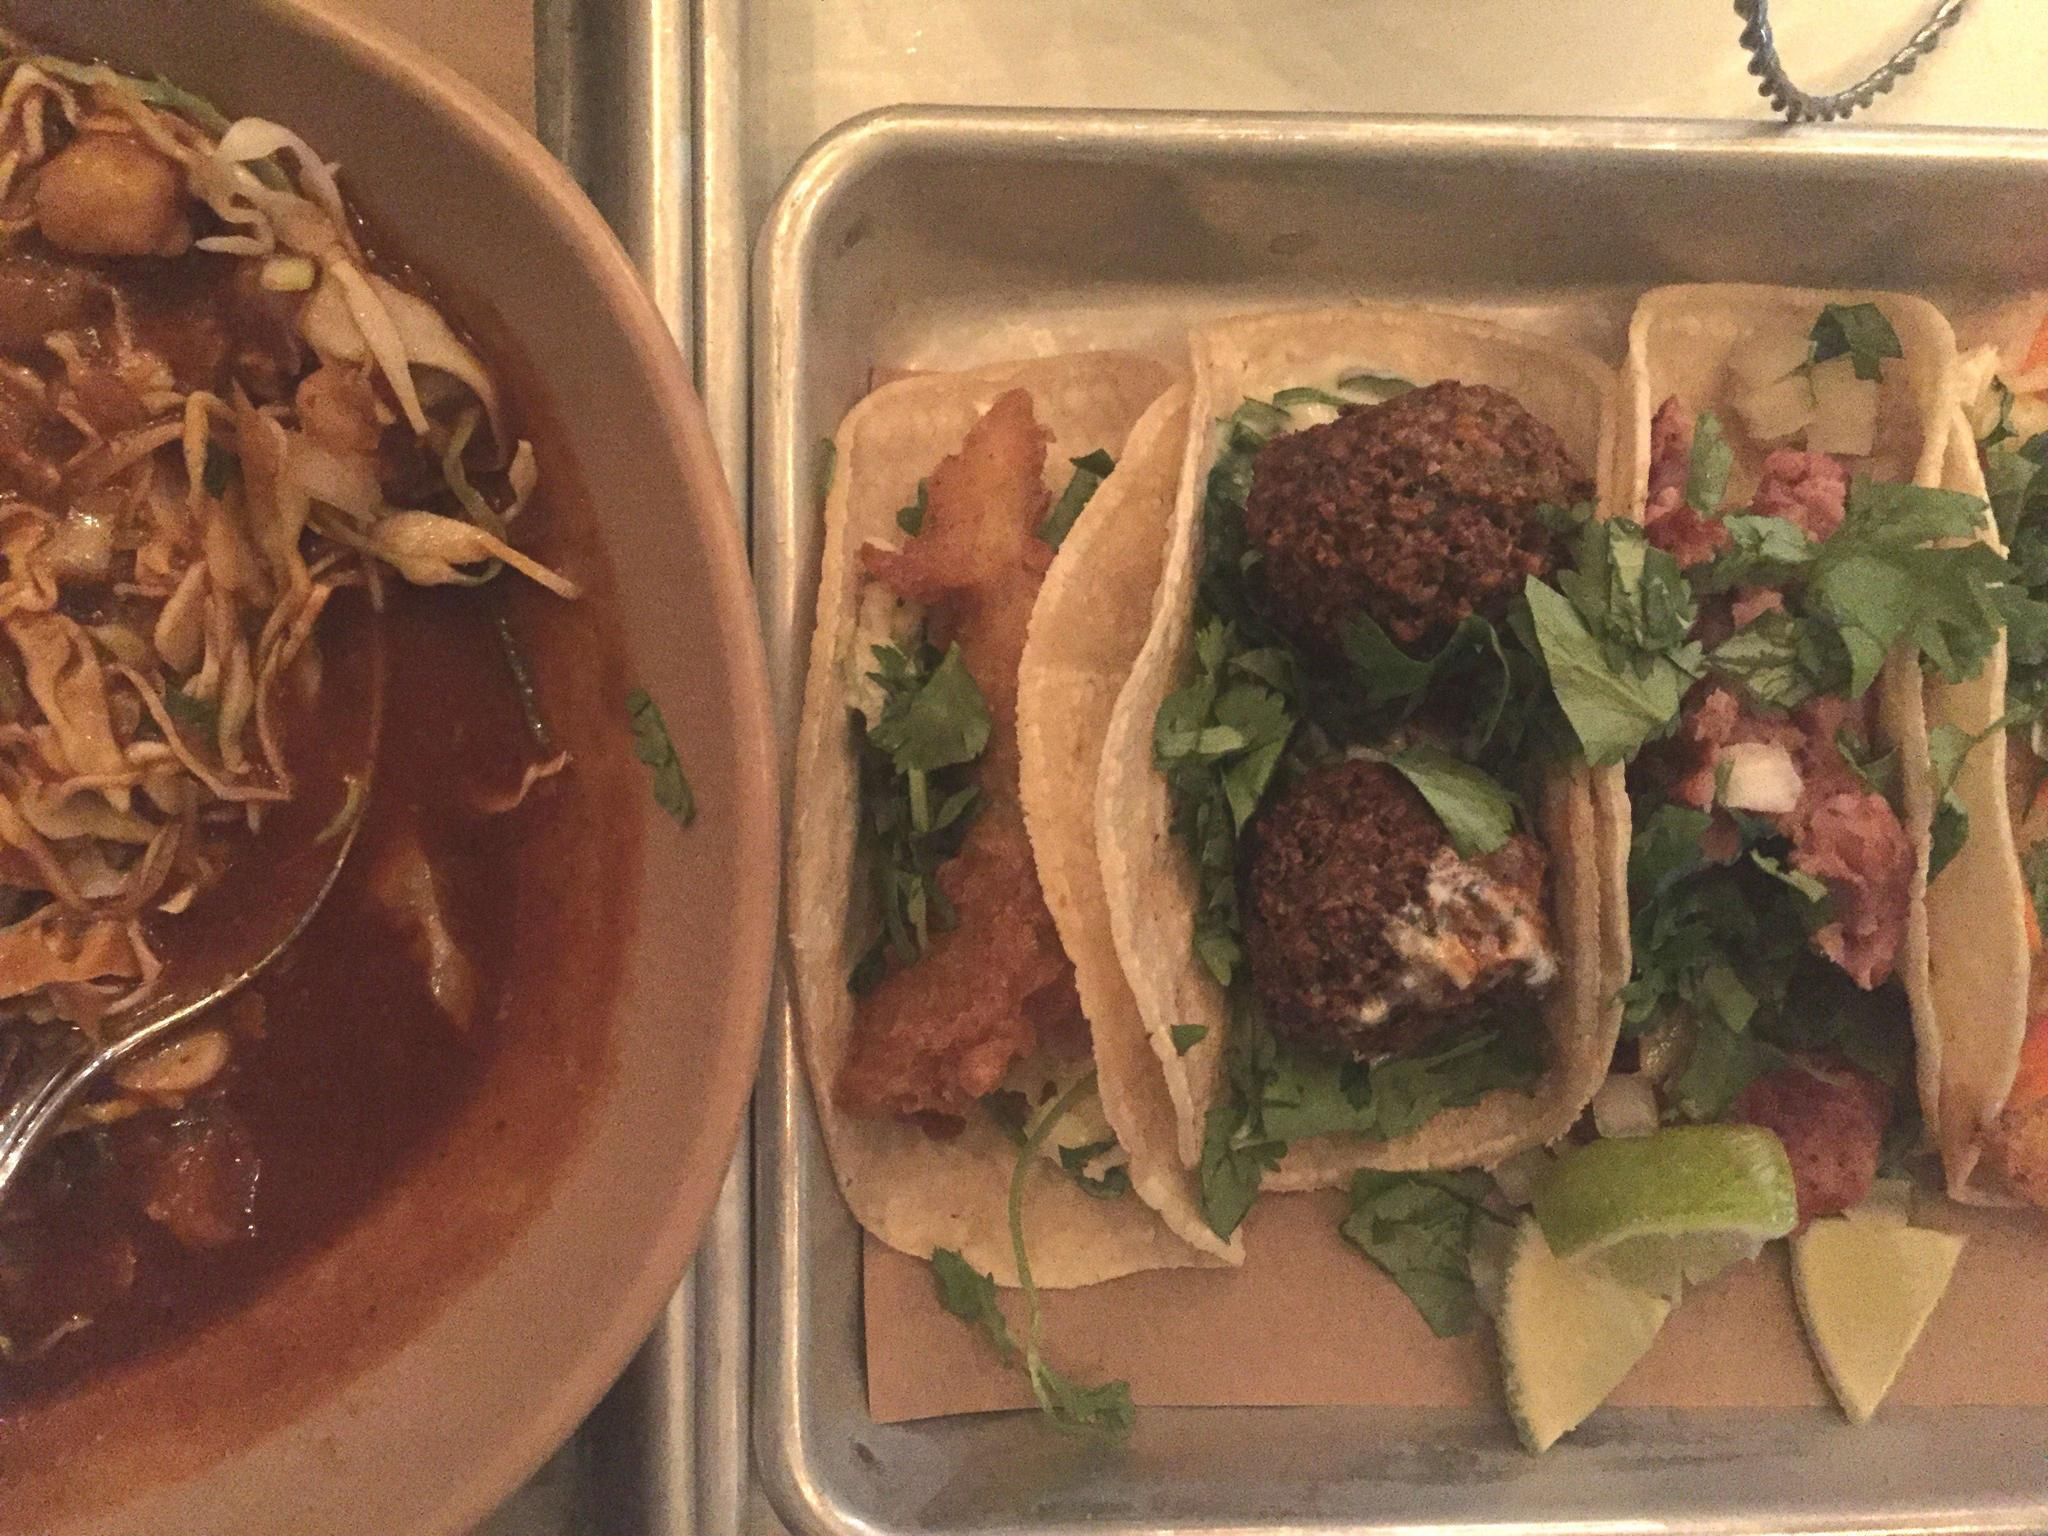 Bartaco serves up eclectic dining experience: Review - Orlando Sentinel